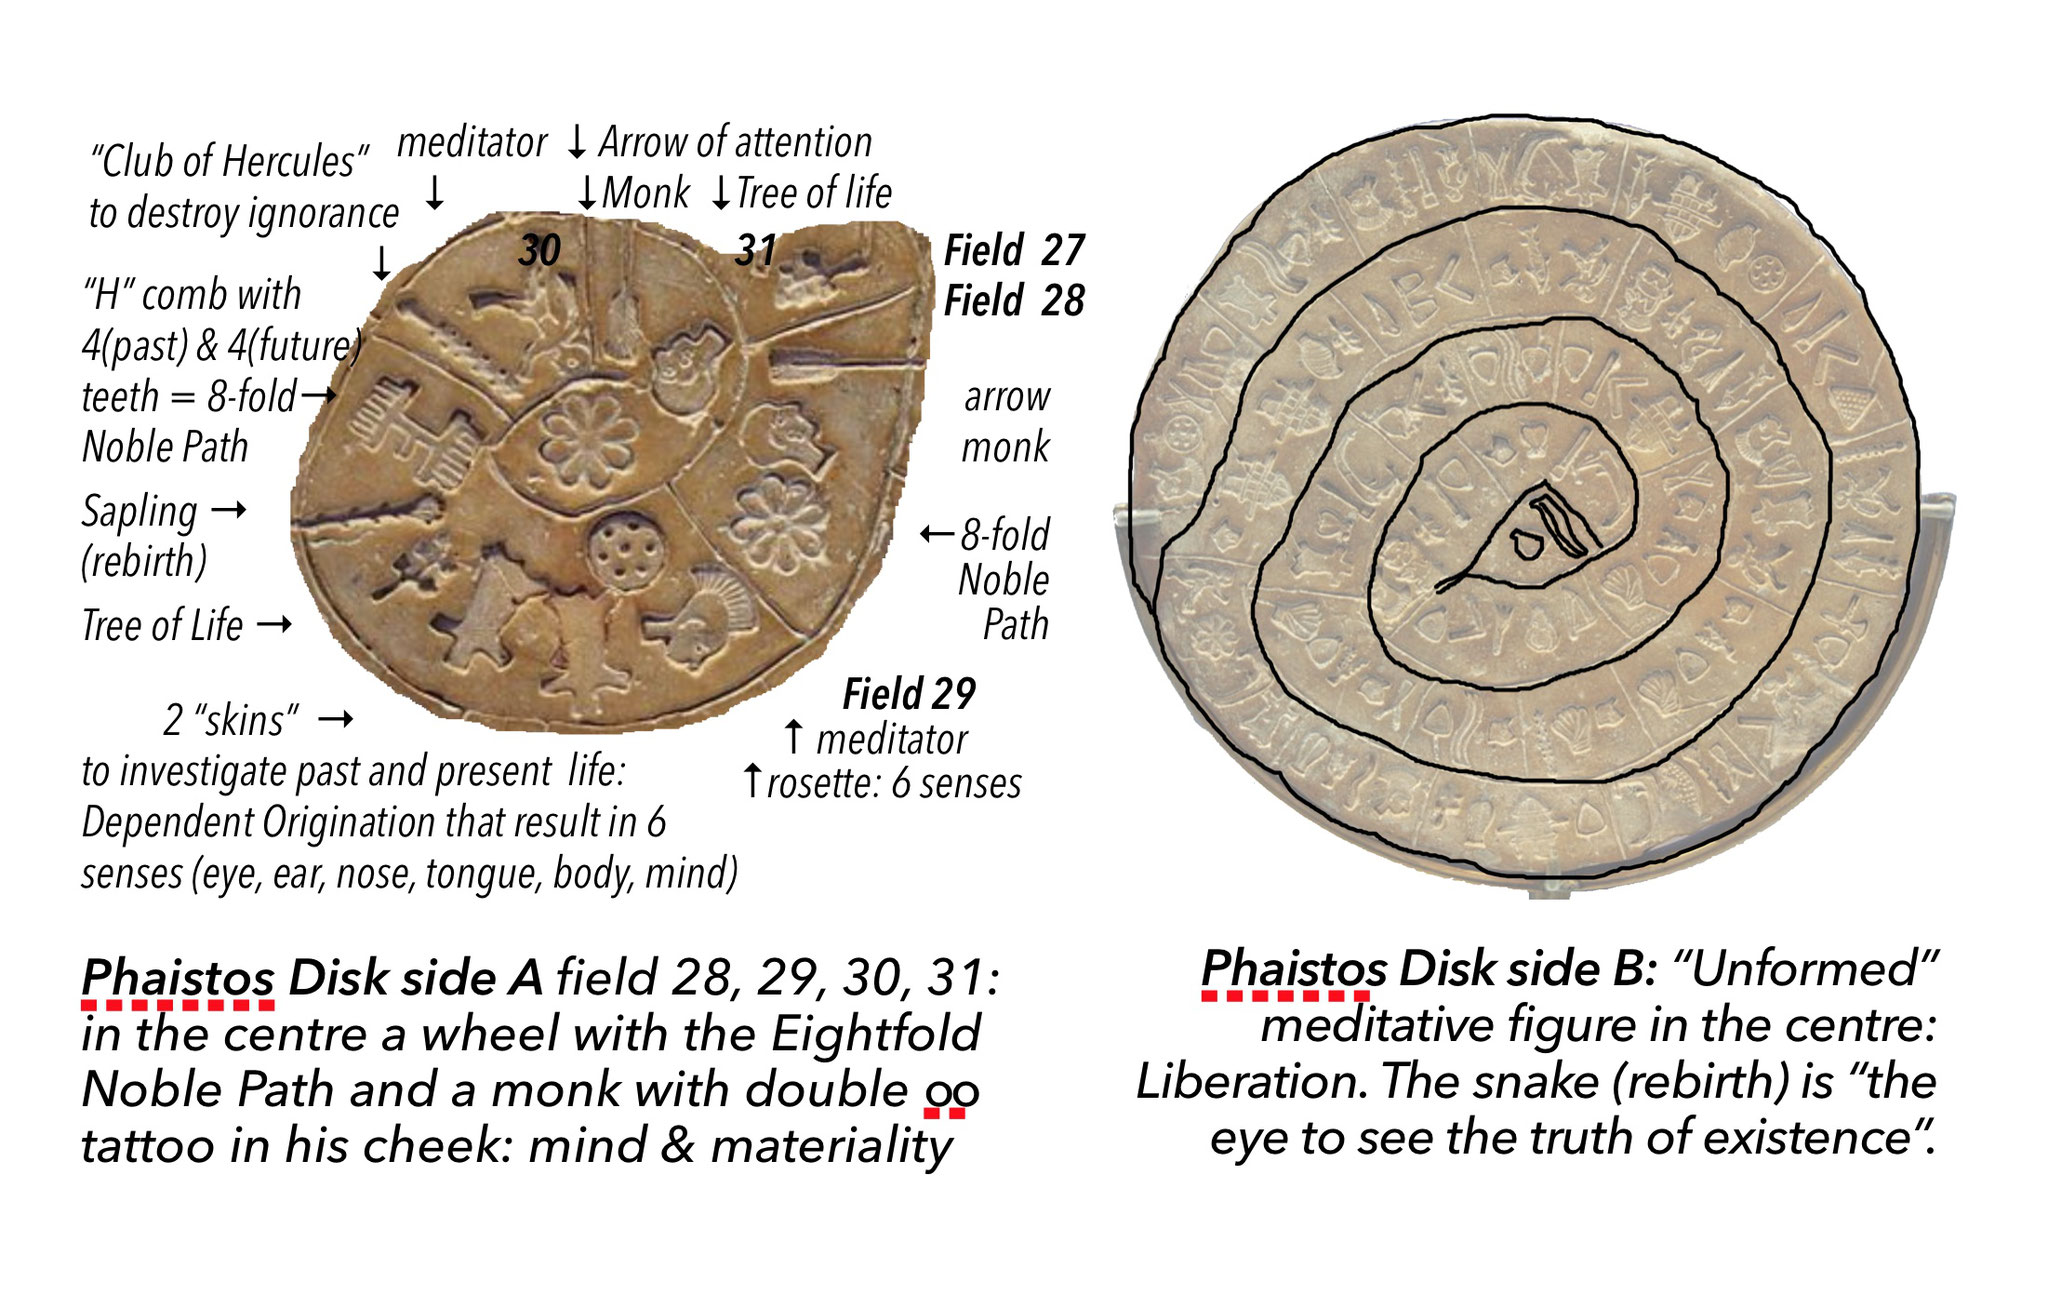 Phaistos disk: Eightfold Noble Path and Liberation